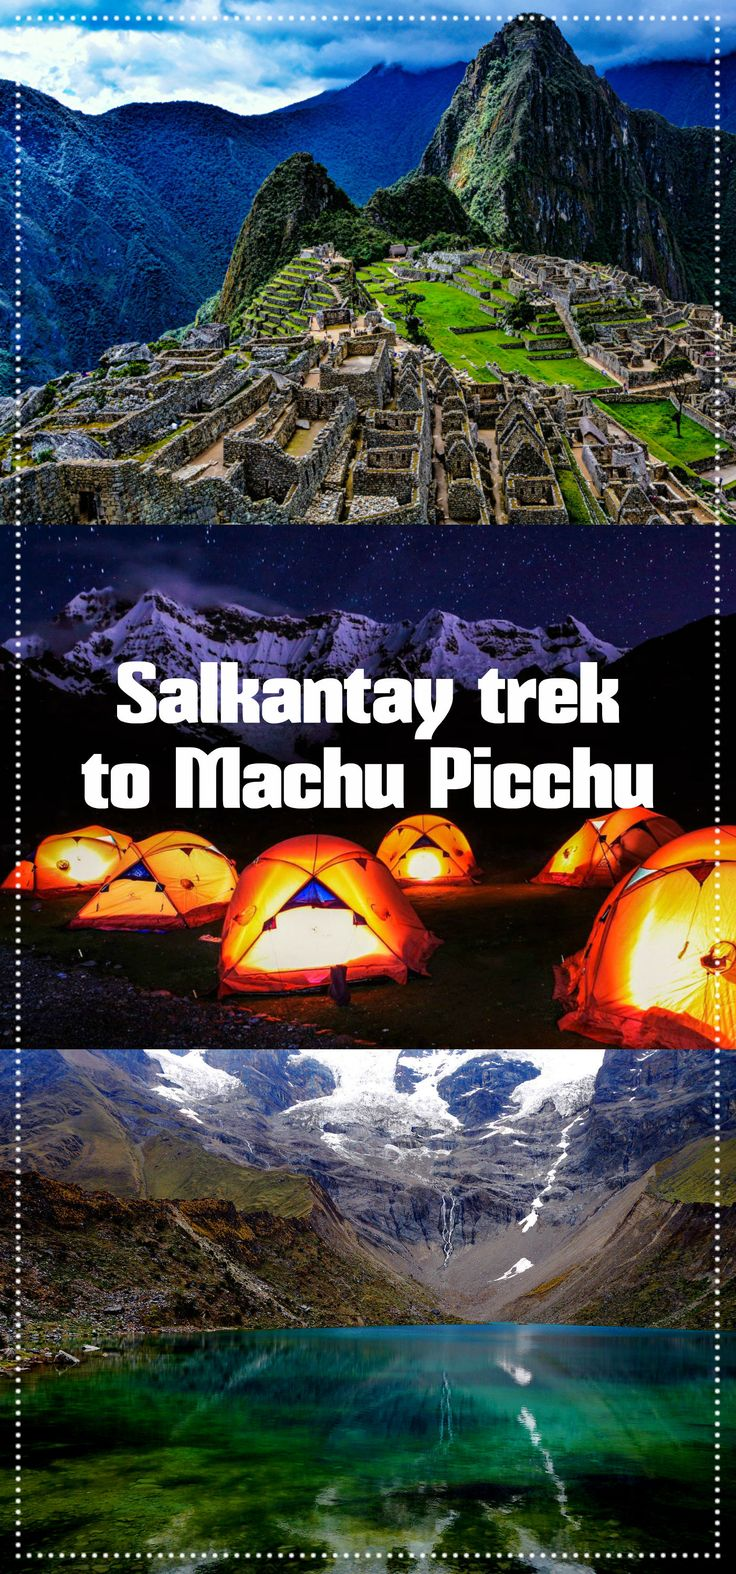 Salkantay trek to Machu Picchu (Peru), complete guide. 5-day itinerary, map, packing tips, prices, tips, prices. Budget alternative to Inca trail.